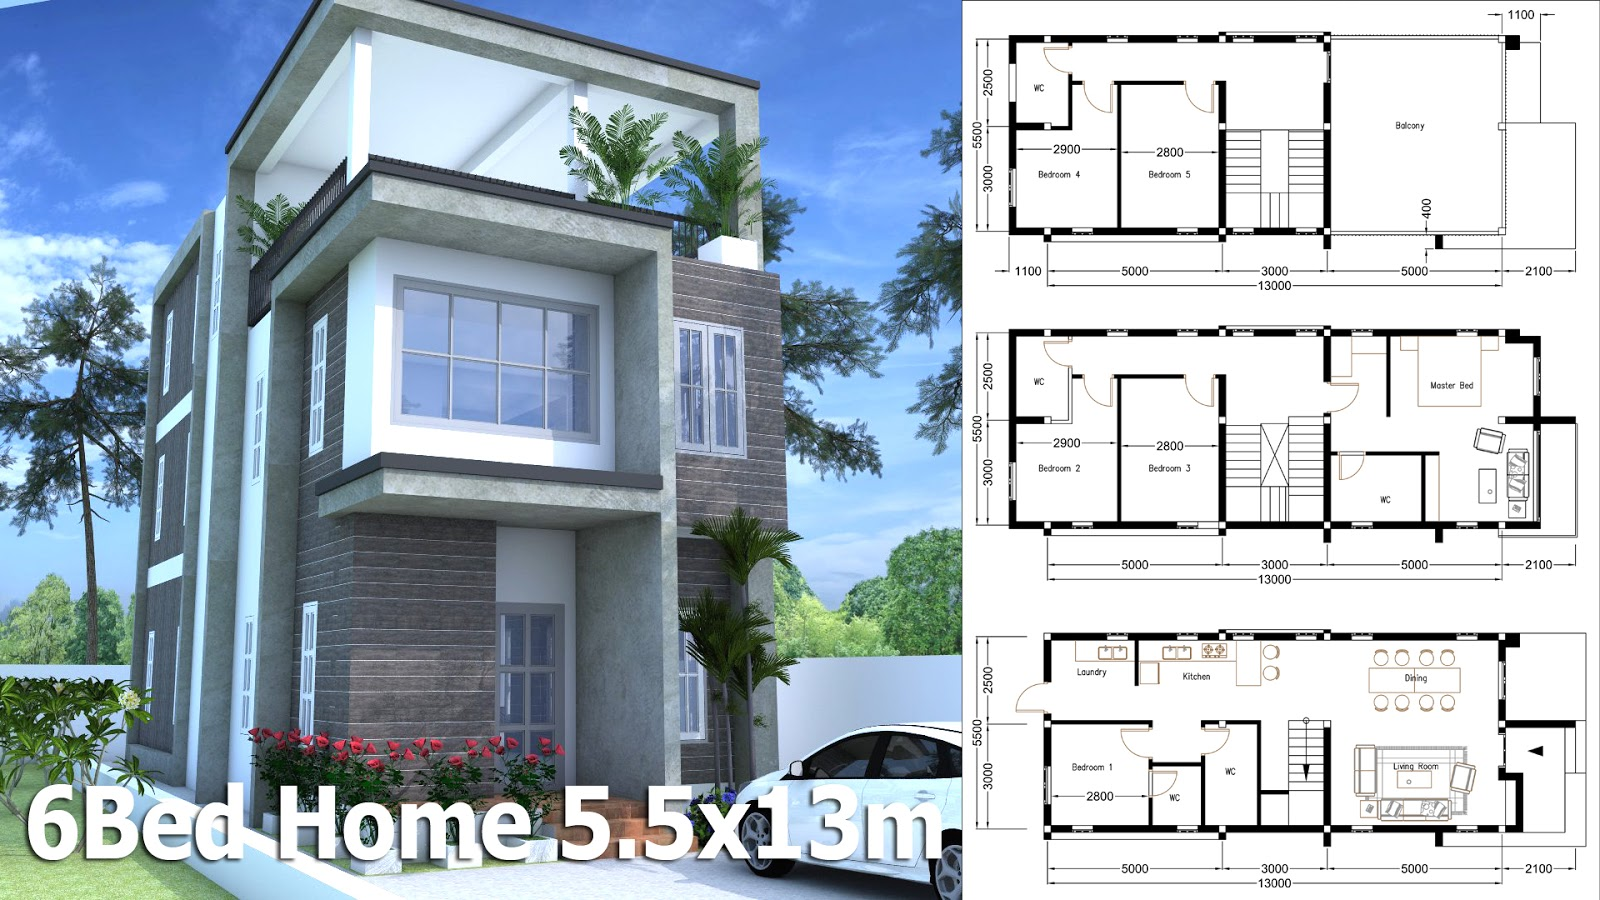 SketchUp Modern Home Plan 5.5x13m With 6 Bedroom - House ...